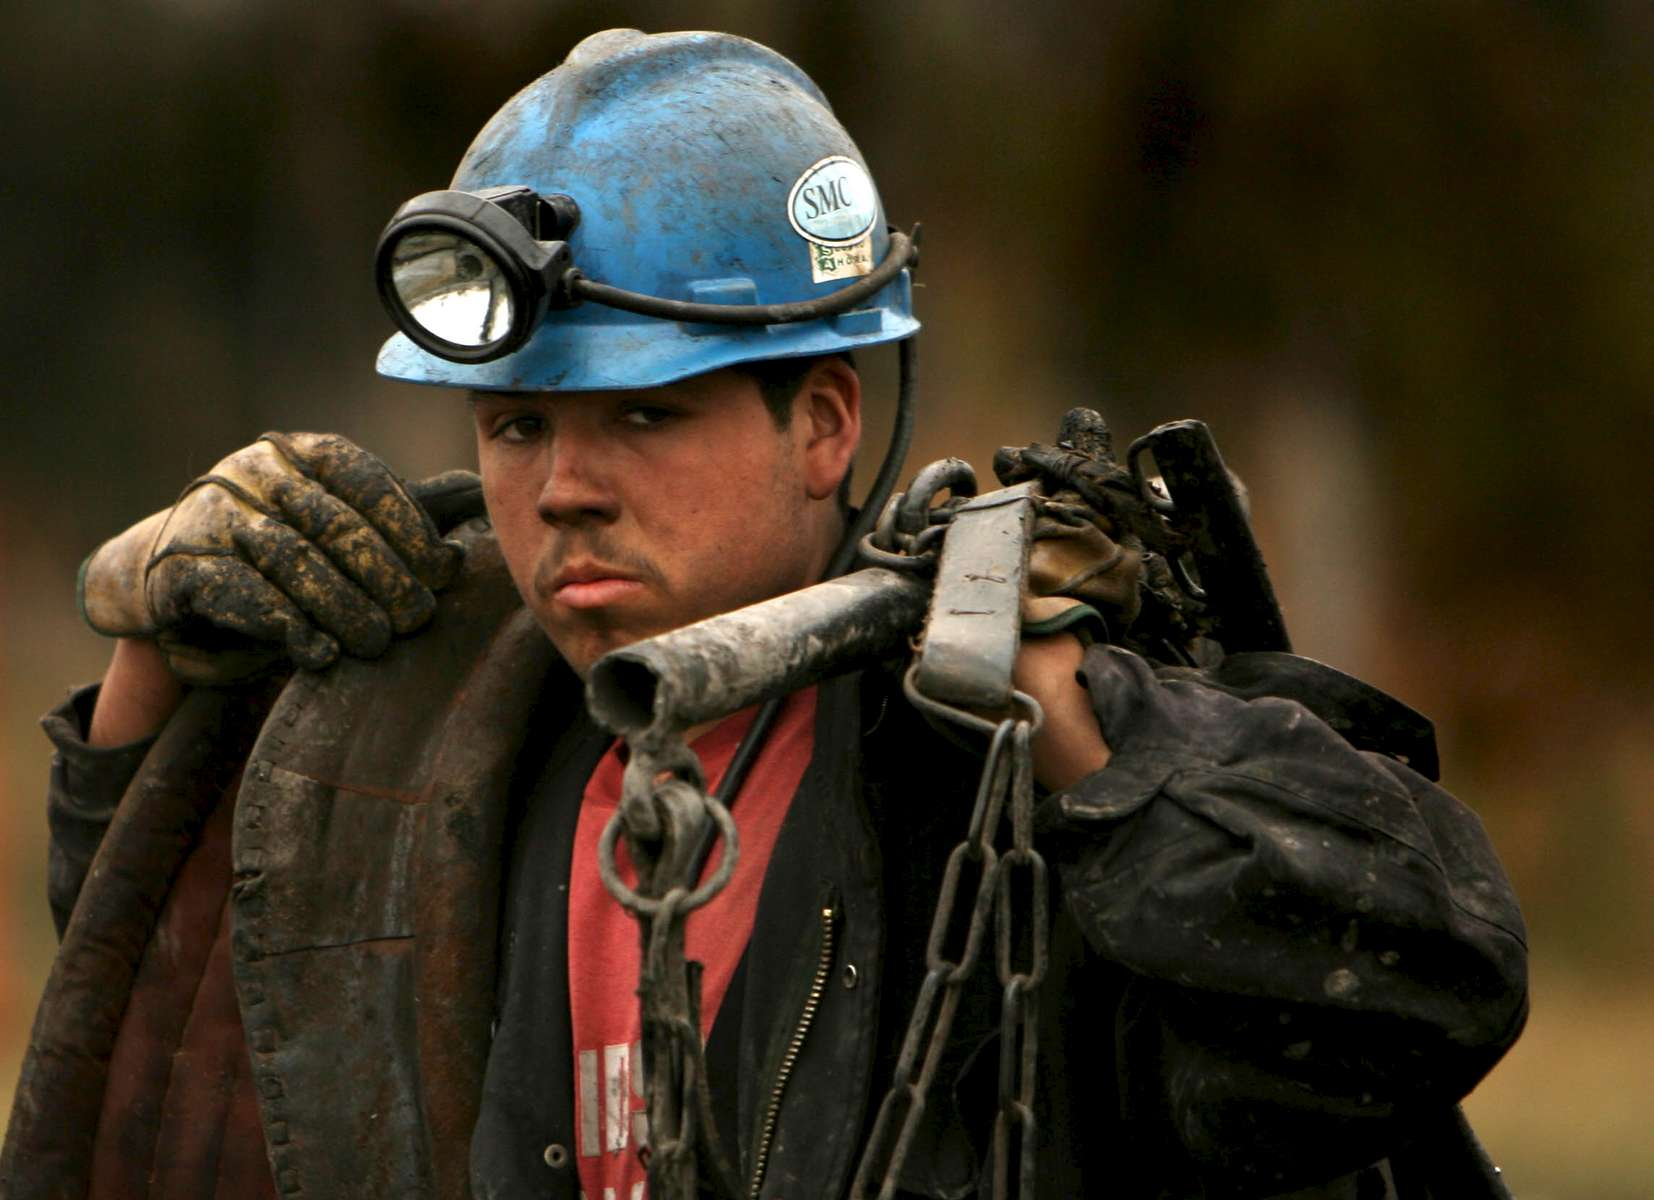 Luis Enrique Beltrán, 18, ( accent on {quote}a{quote})  leaves his shift in rescue efforts Friday at the Pasta de Conchos coal mine in San Juan de Sabinas in the Mexican state of Coahuila. Beltran has only been working at the mine for 8 months and is not sure he will return after rescue efforts are over. Family members continued to wait outside the Pasta de Conchos coal mine as well. In the Early morning on Sunday 65 miners were trapped as much as 2000 feet below ground after an explosion.Sharón Steinmann / Houston Chronicle